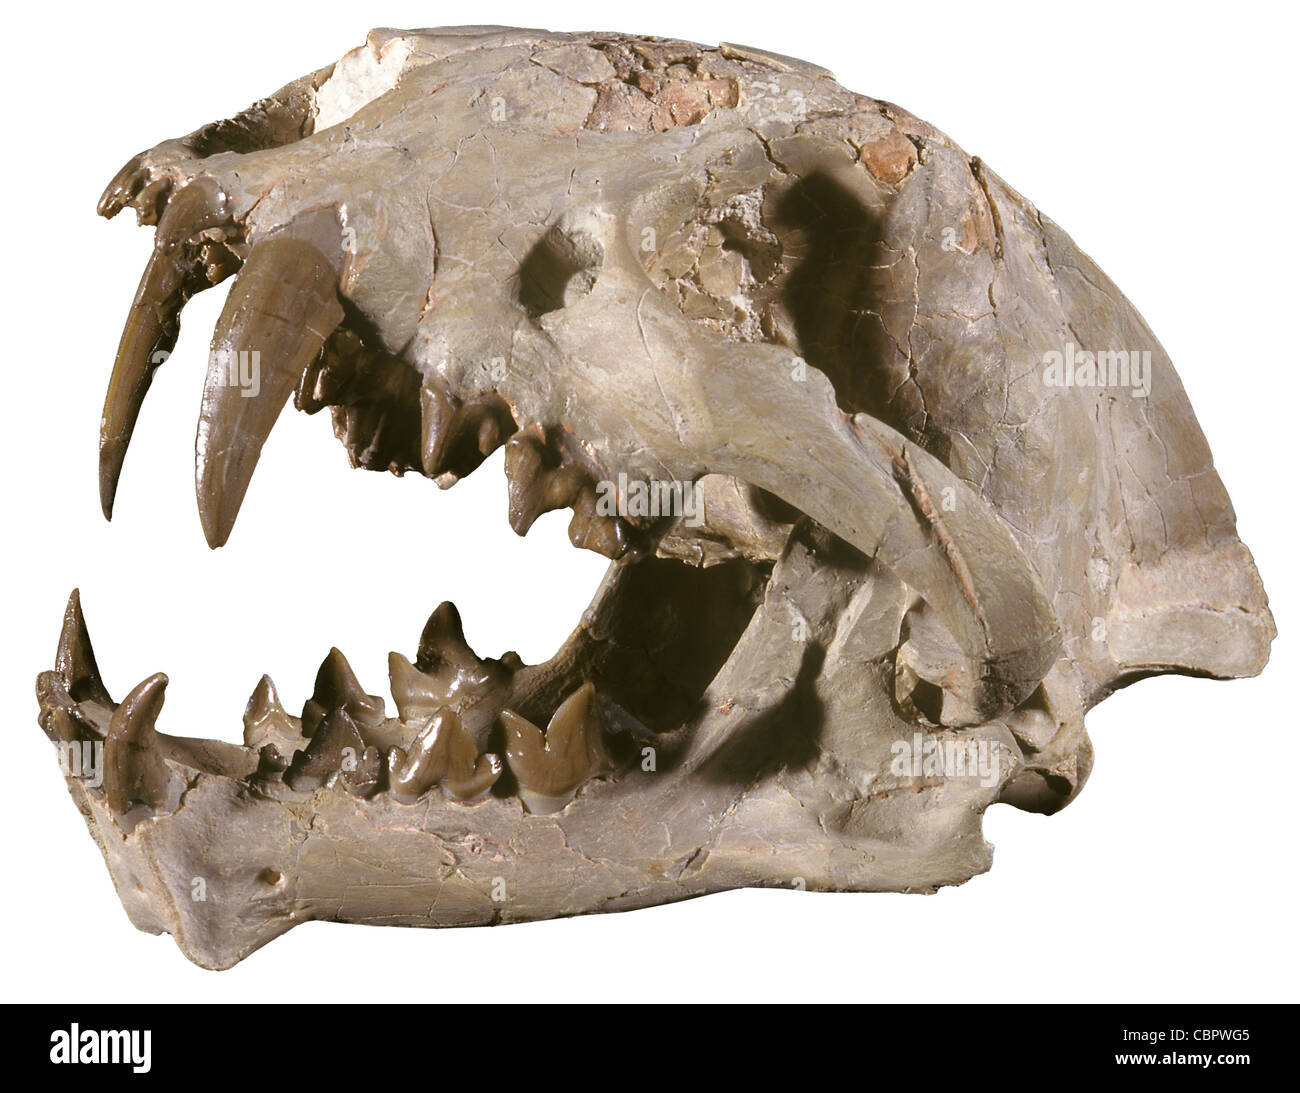 b06f700a7 Saber Tooth Cat Skull, Dinictus squalidens, Oligocene, South Dakota - Stock  Image